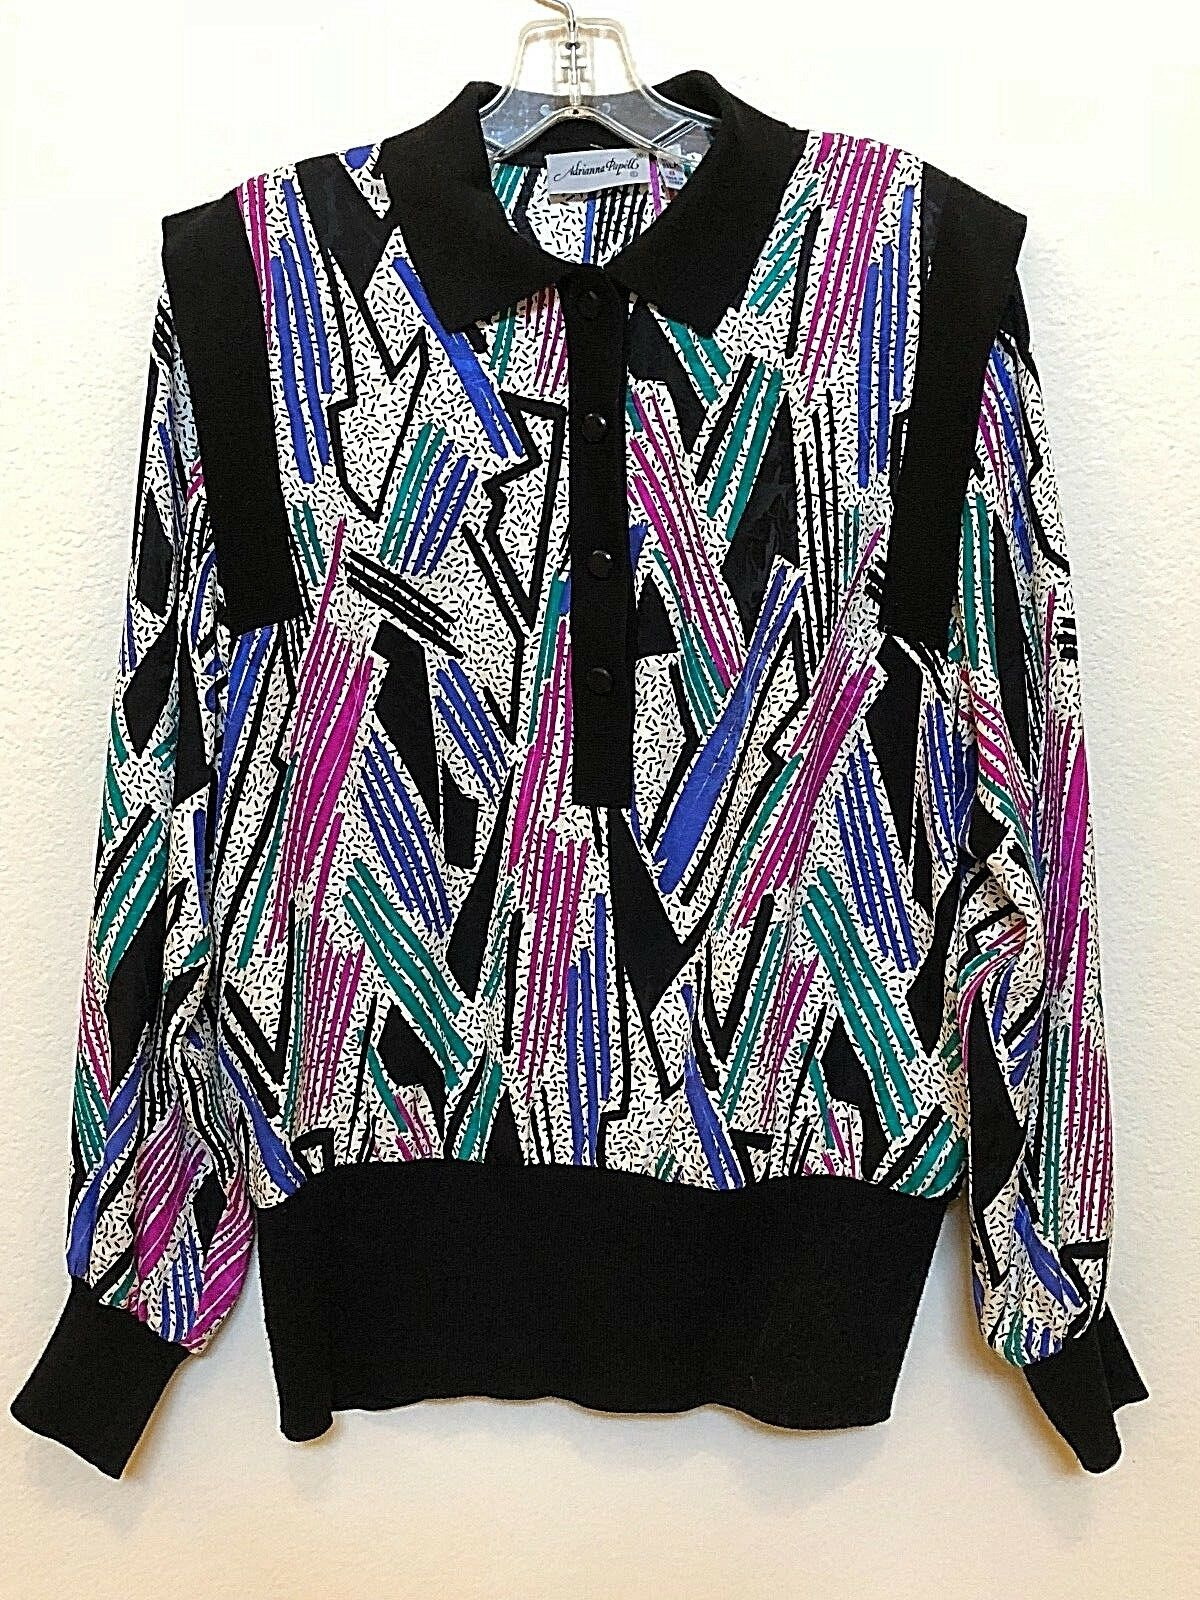 Adrianna Papell by Neiman Marcus Women's Silk Long Sleeve Blouse - Size 8 (5265)